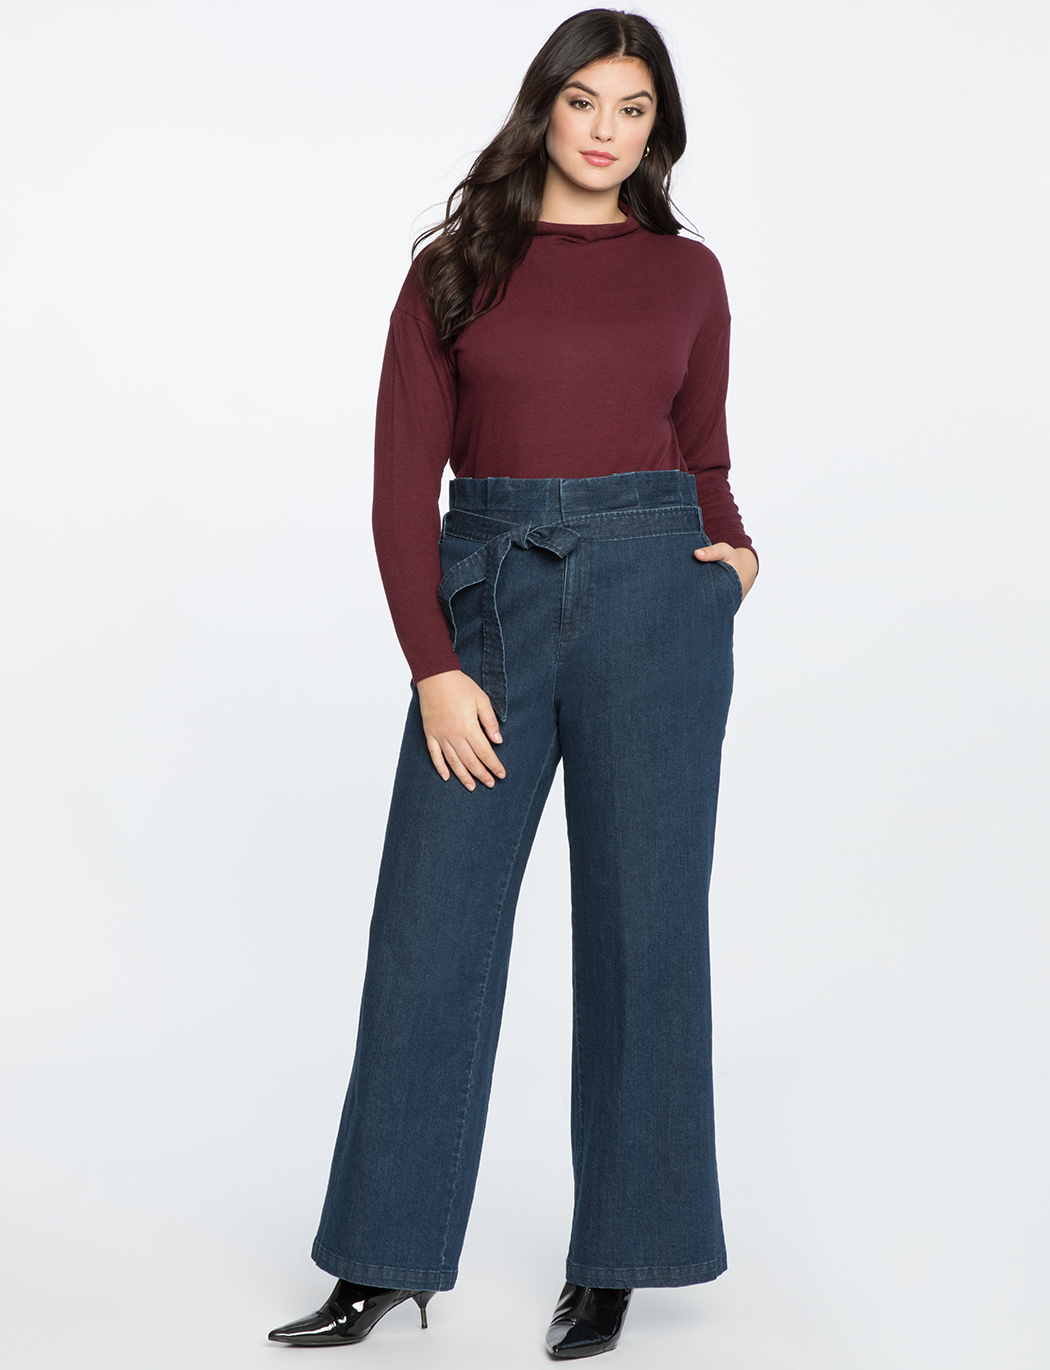 099e775c Ruffle Waisted Wide Leg Trouser Jean | Women's Plus Size Pants ...